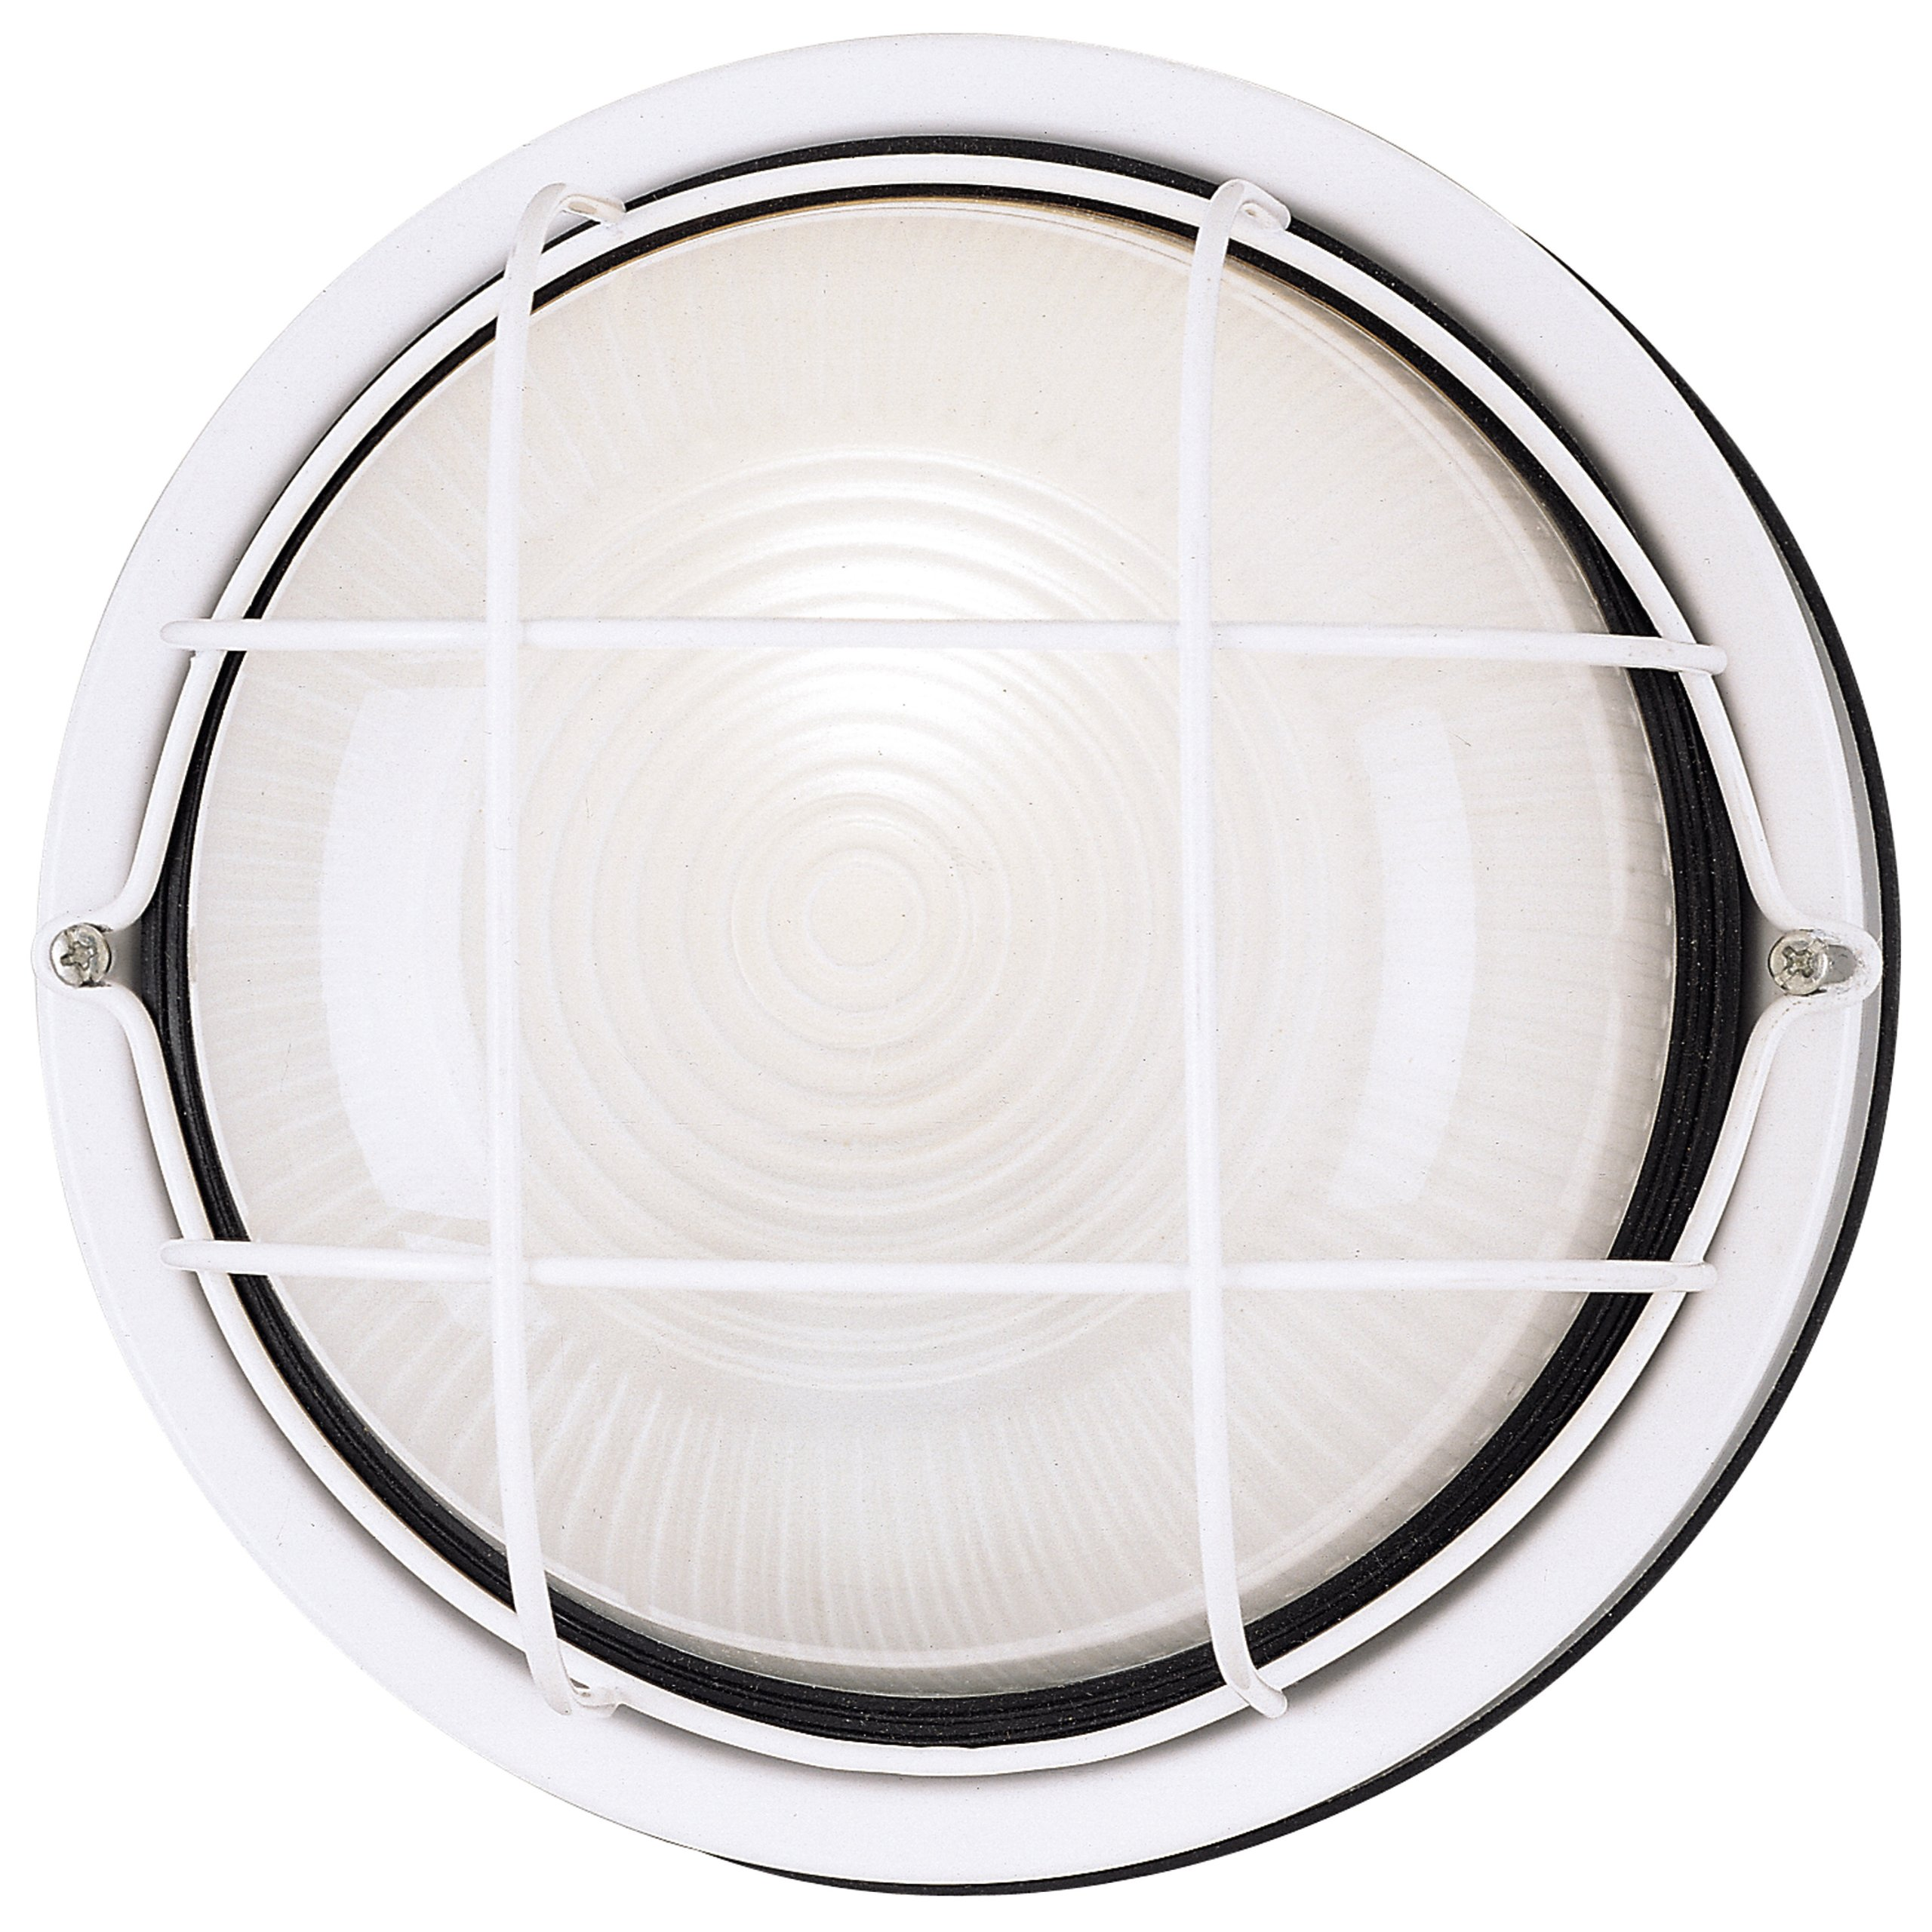 Westinghouse 6783600 One-Light Exterior Wall Fixture, White Finish on Steel with White Glass Lens